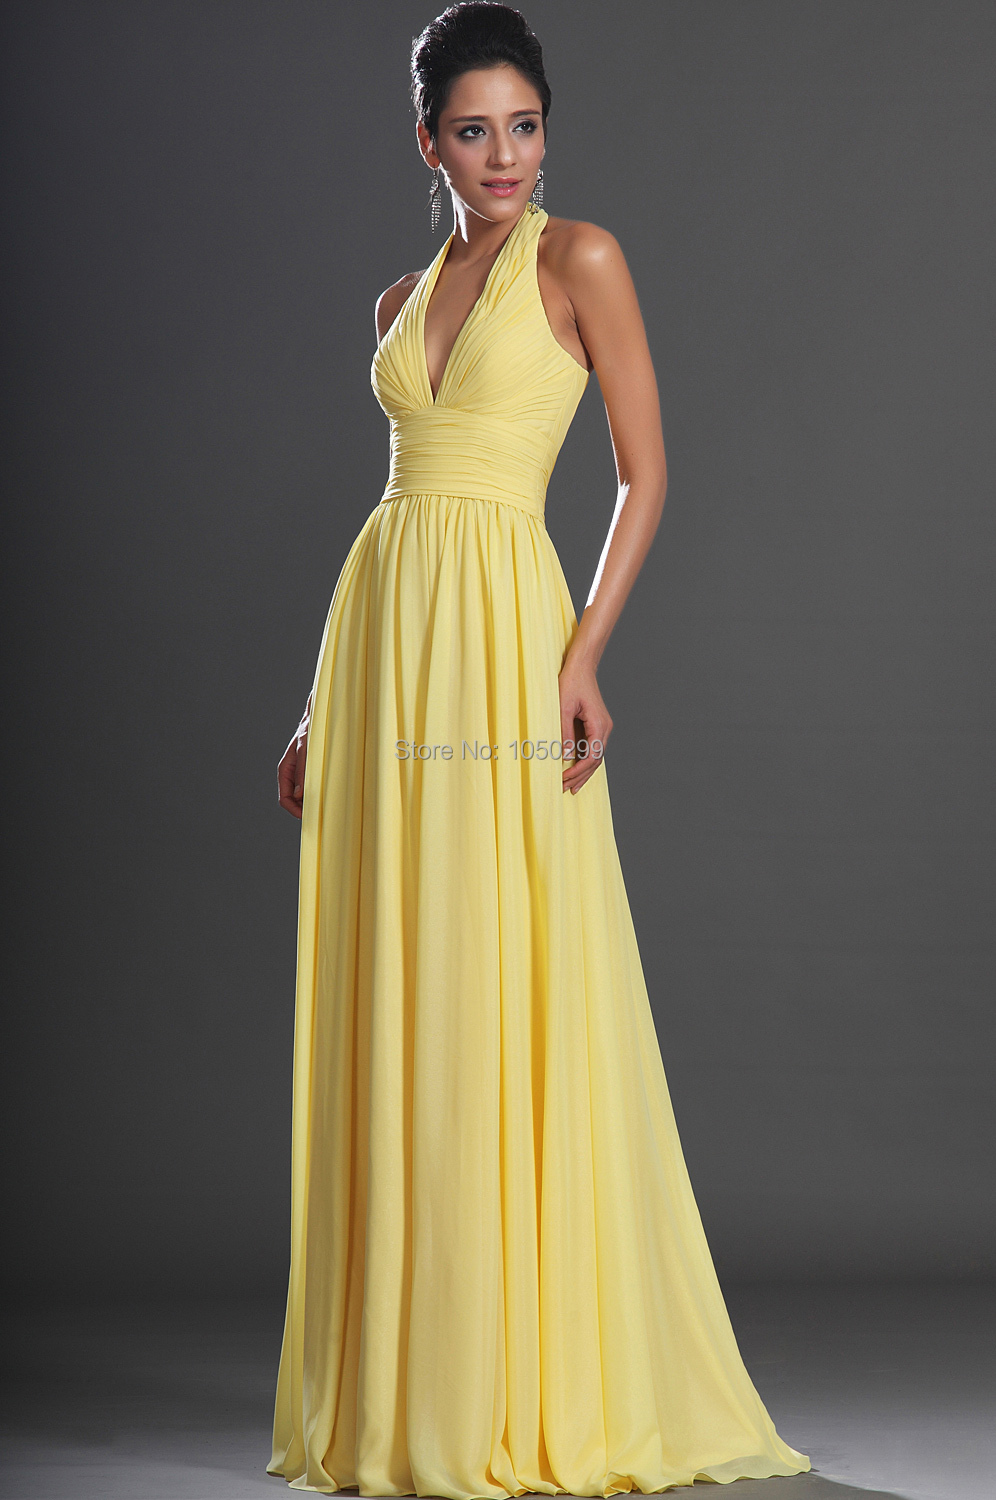 Dress for prom long yellow gown chiffon halter vestido longo amarelo dress for prom long yellow gown chiffon halter vestido longo amarelo 2015 prom gowns vestidos longos formatura in prom dresses from weddings events on thecheapjerseys Choice Image